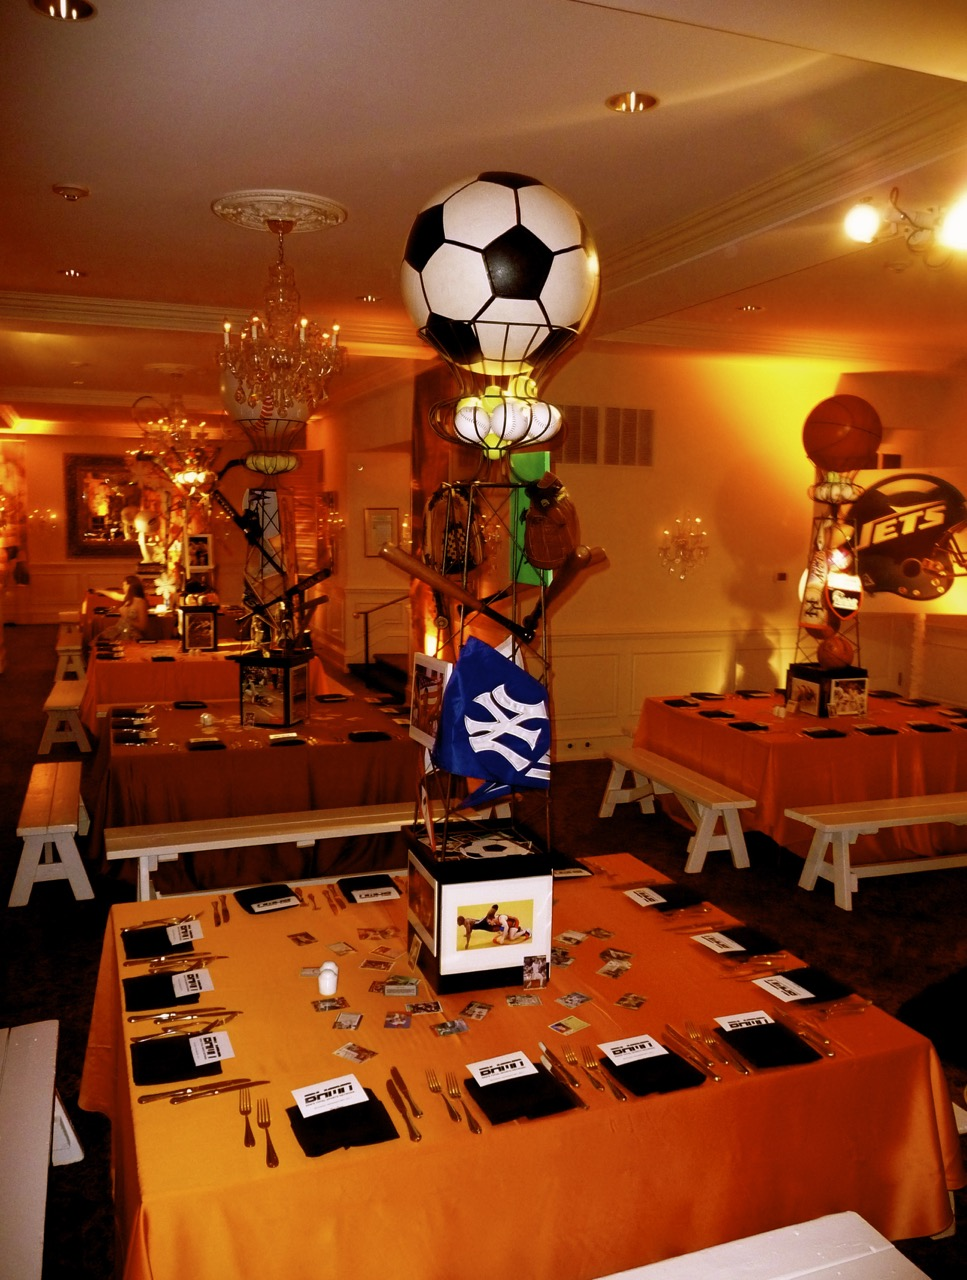 Sports theme gallery eggsotic events sports theme centerpieces decor and lighting by eggsotic events nj event design and decor rental junglespirit